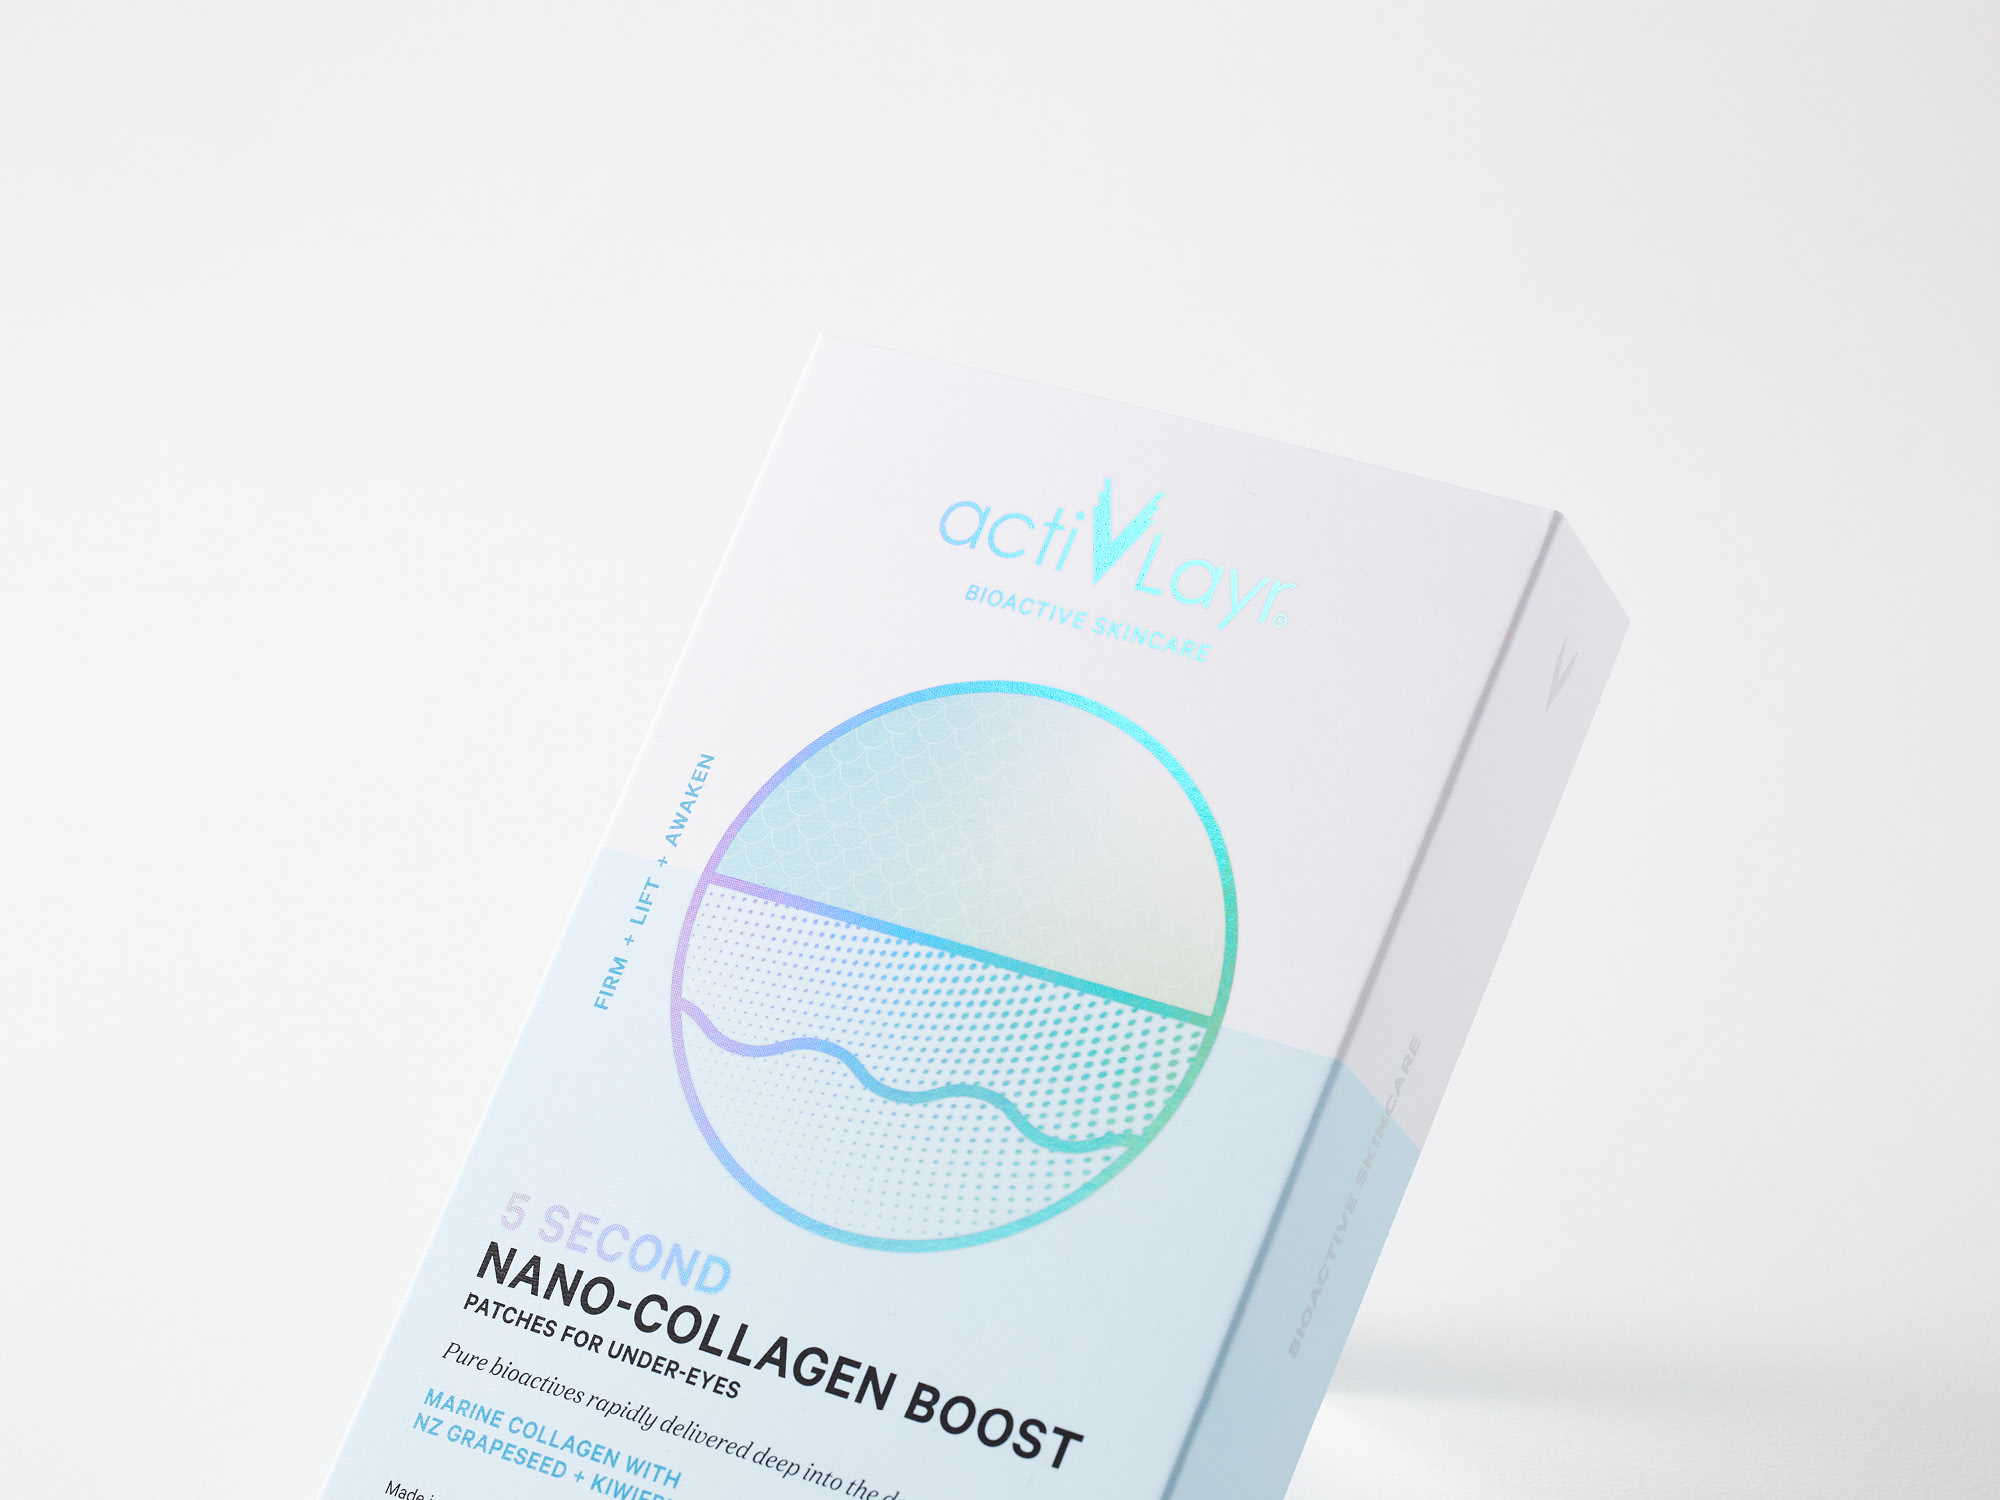 Onfire Design ActivLayr Nano Collagen Boost Packaging Design 3